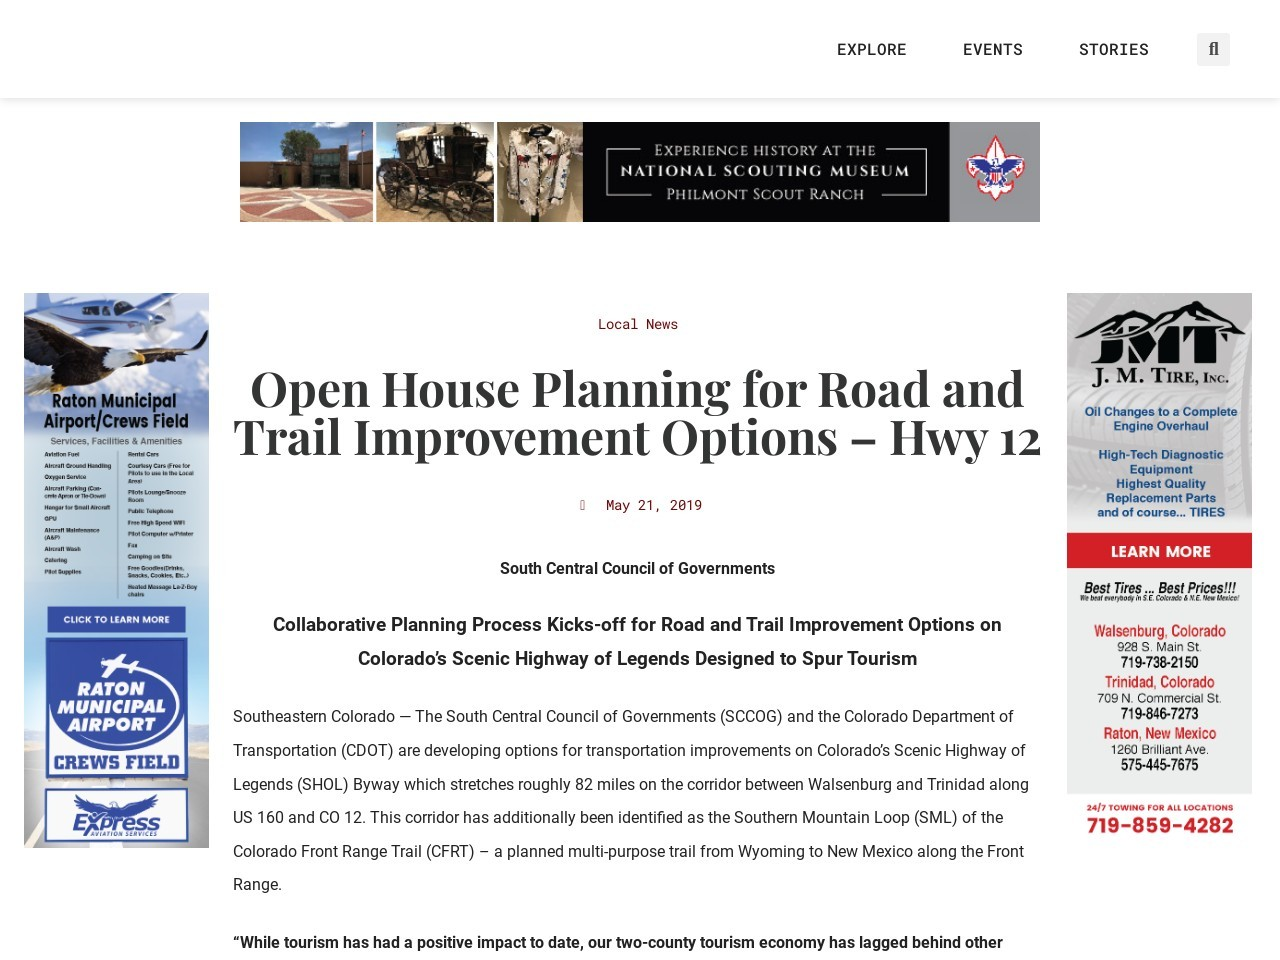 Open House Planning for Road and Trail Improvement Options – Hwy 12